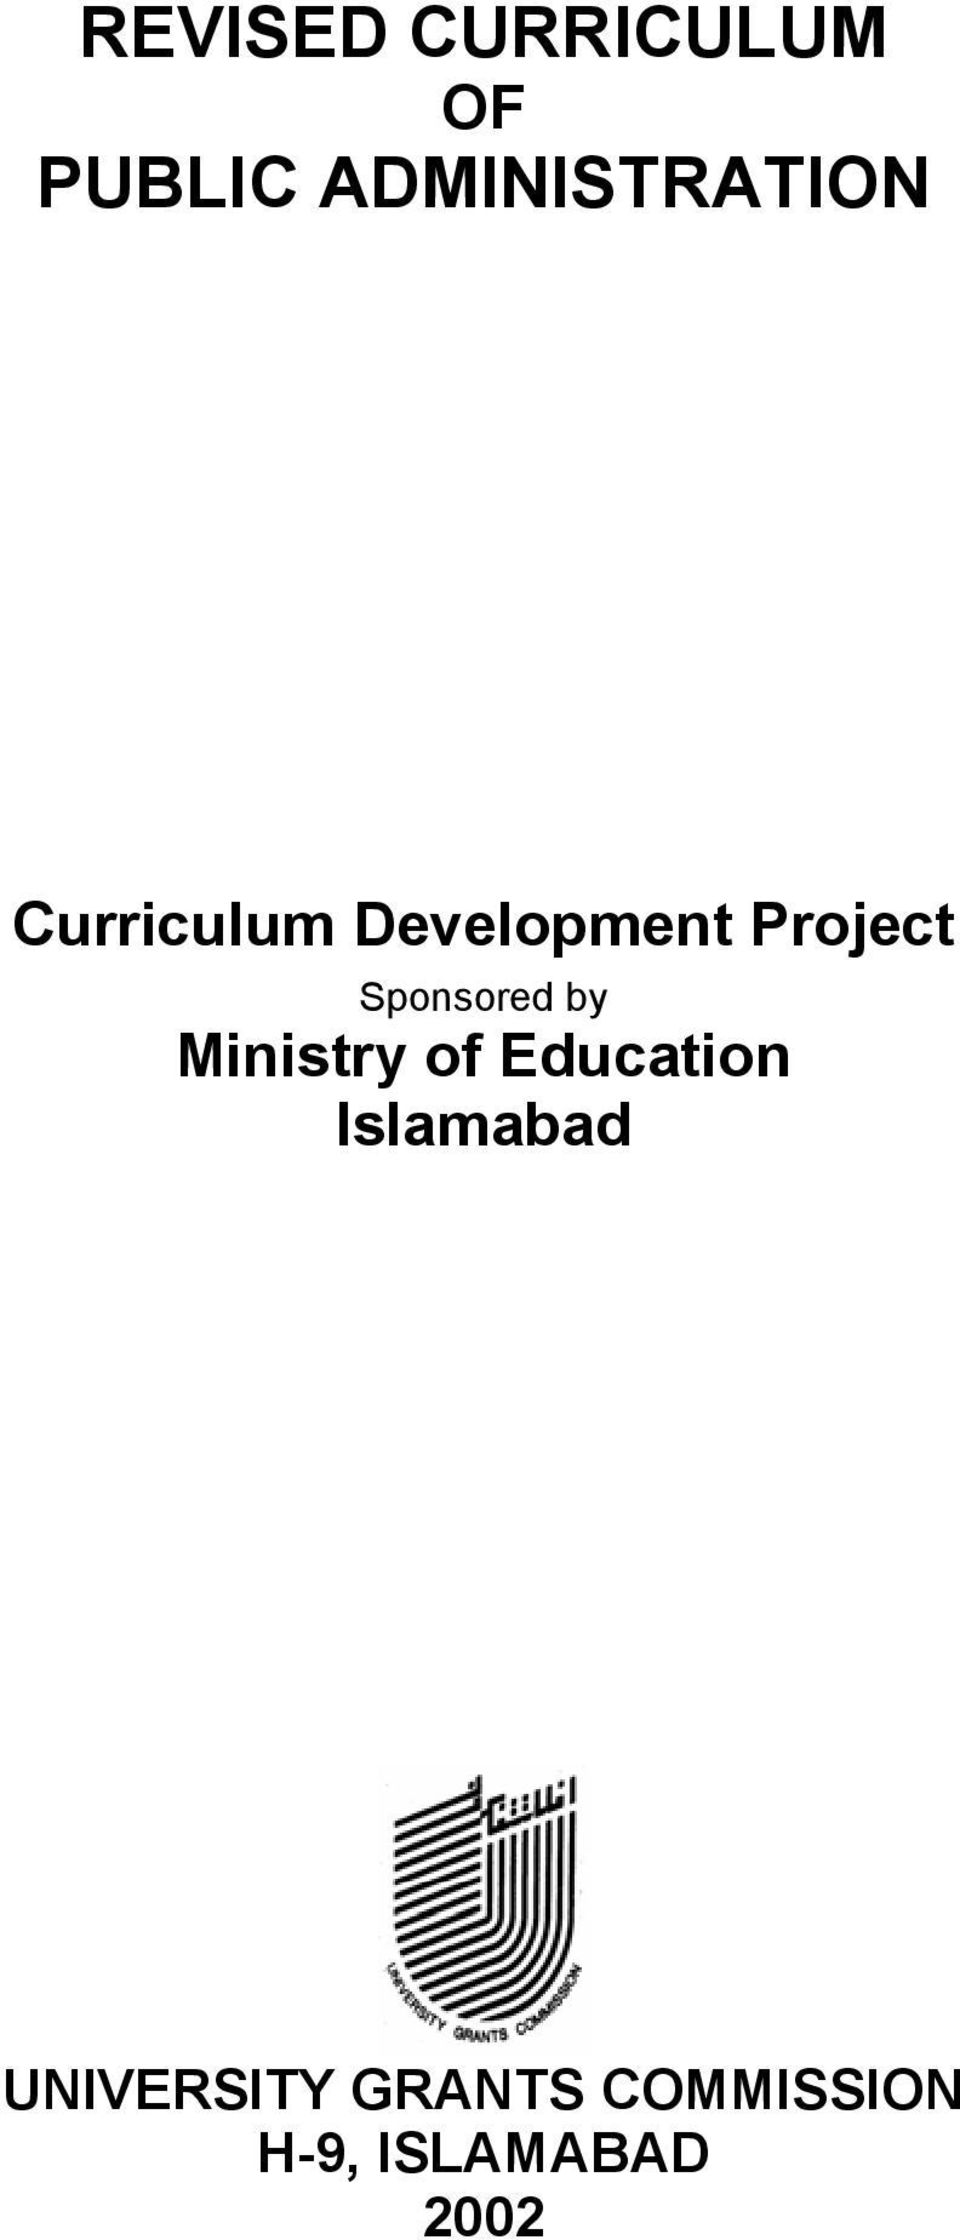 Project Sponsored by Ministry of